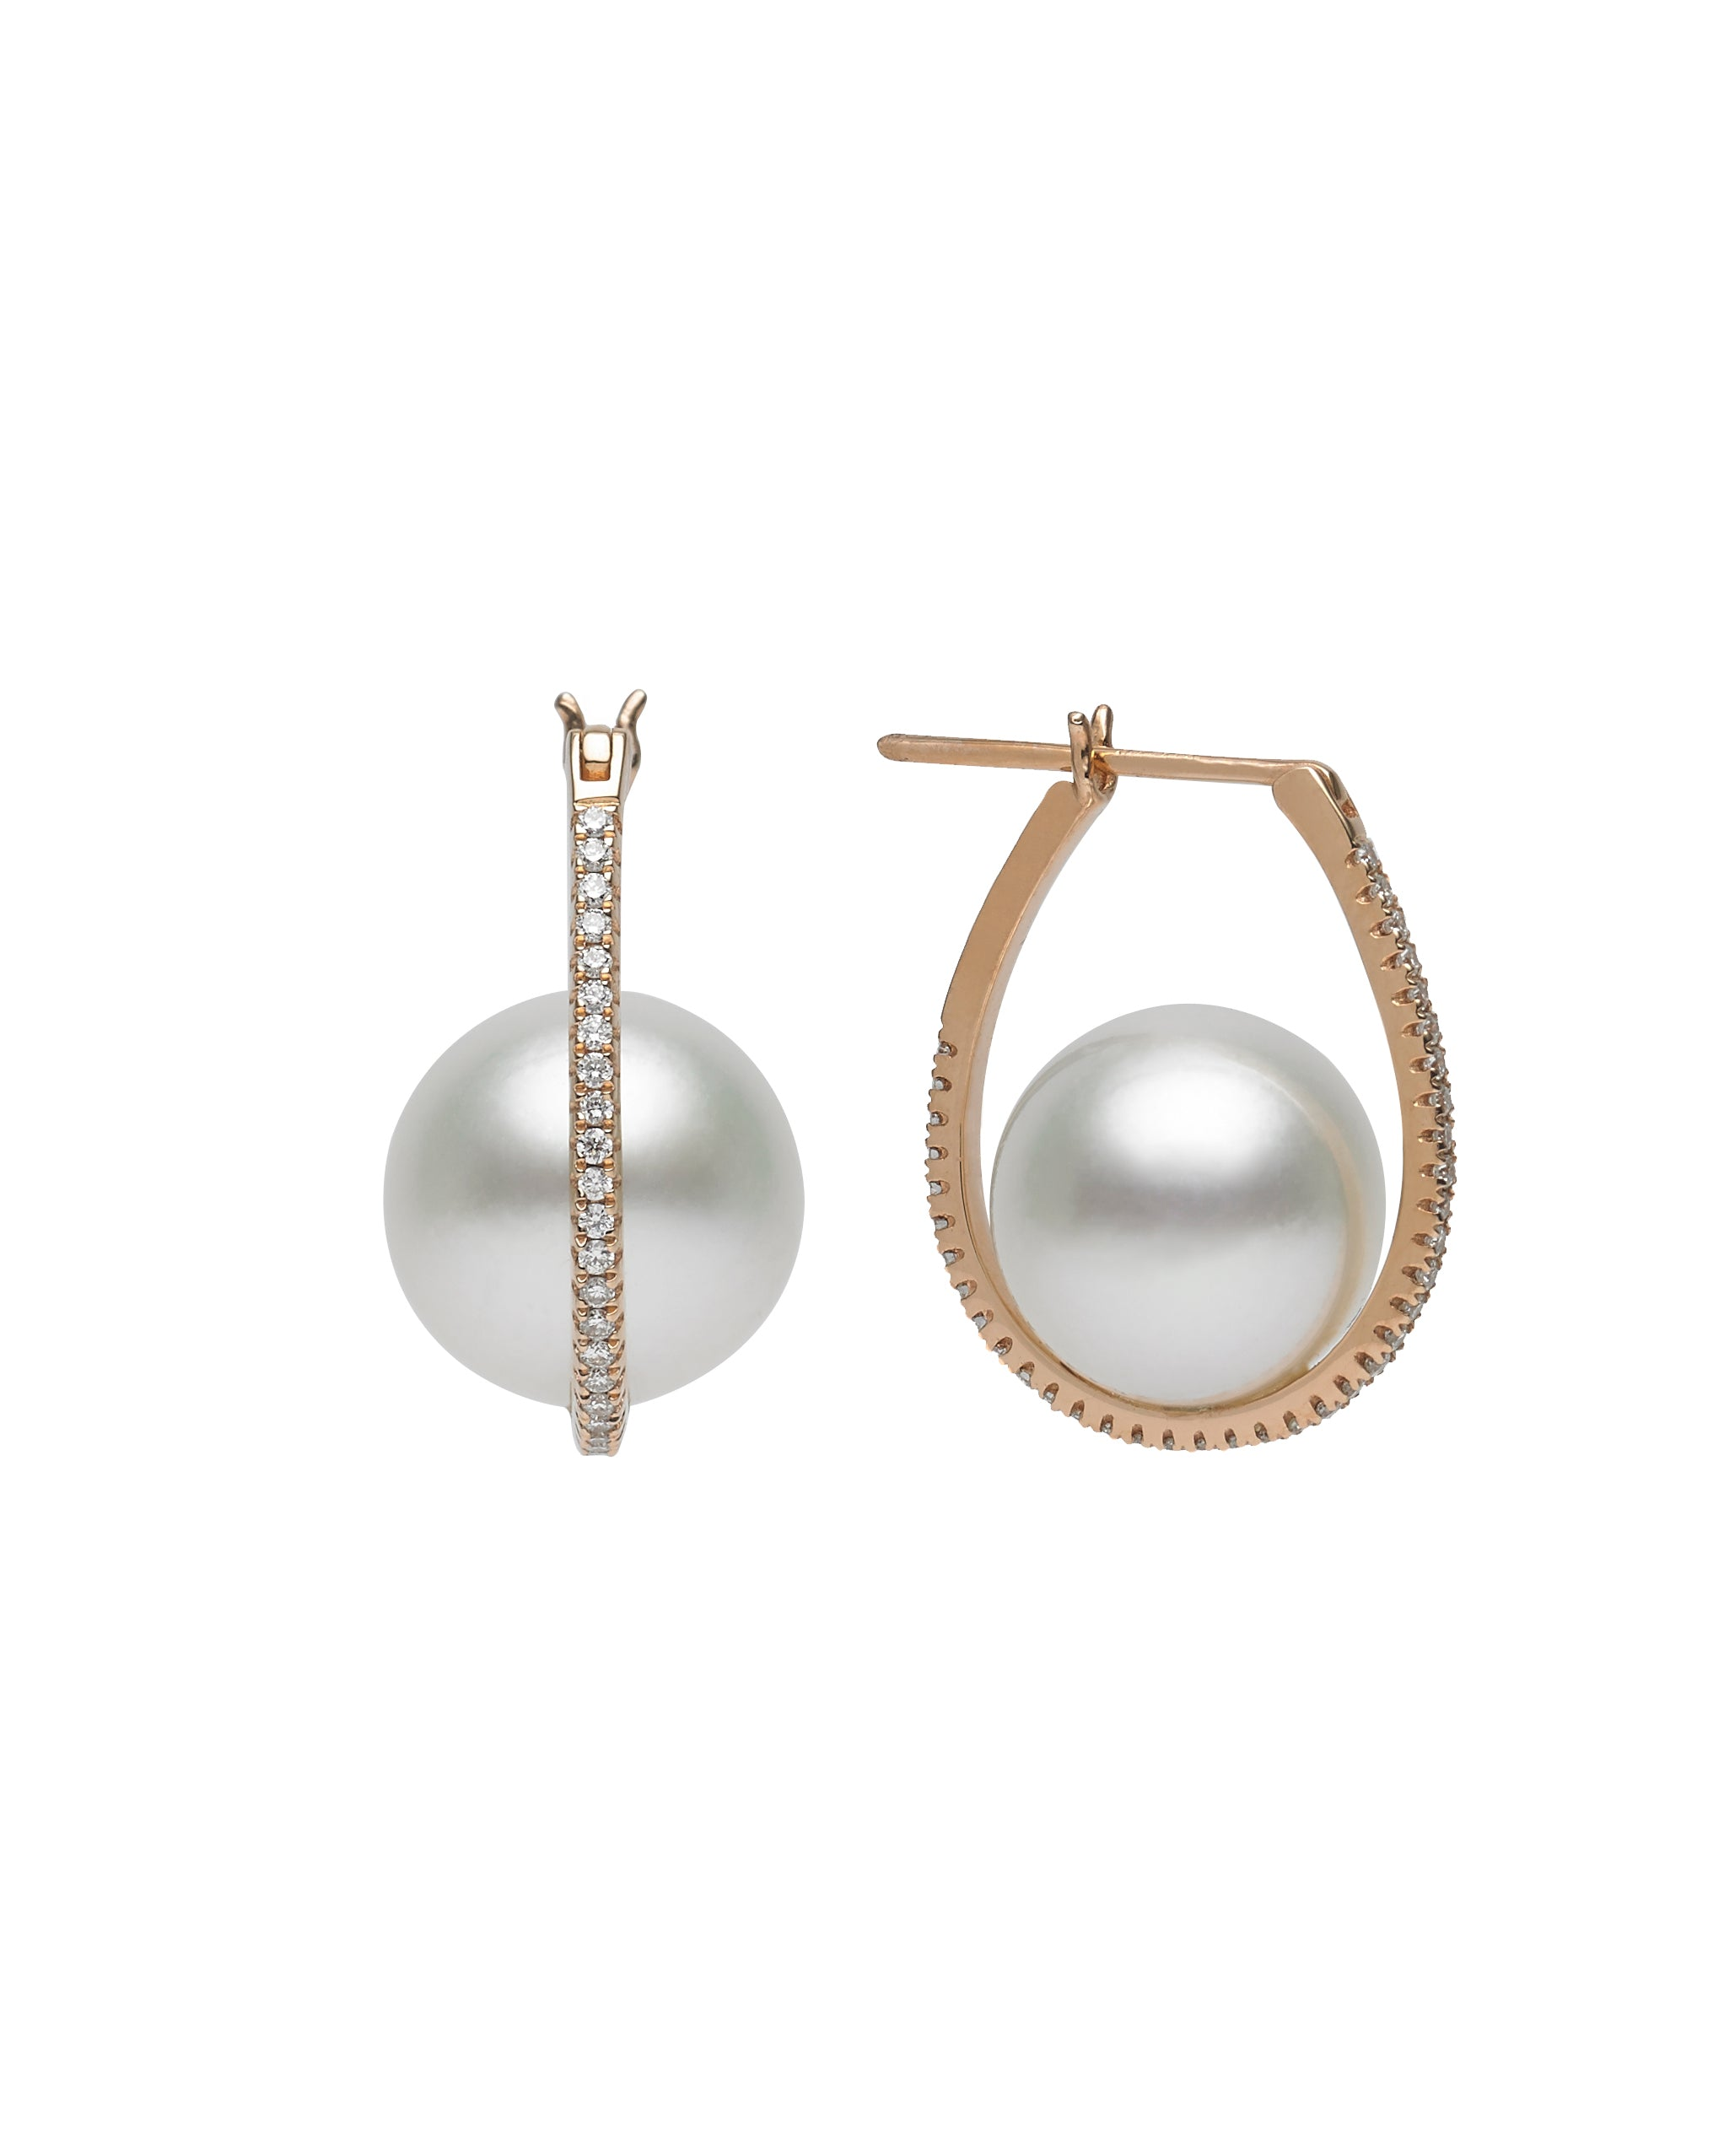 Galaxy Collection 10-11mm White South Sea Pearl Earrings